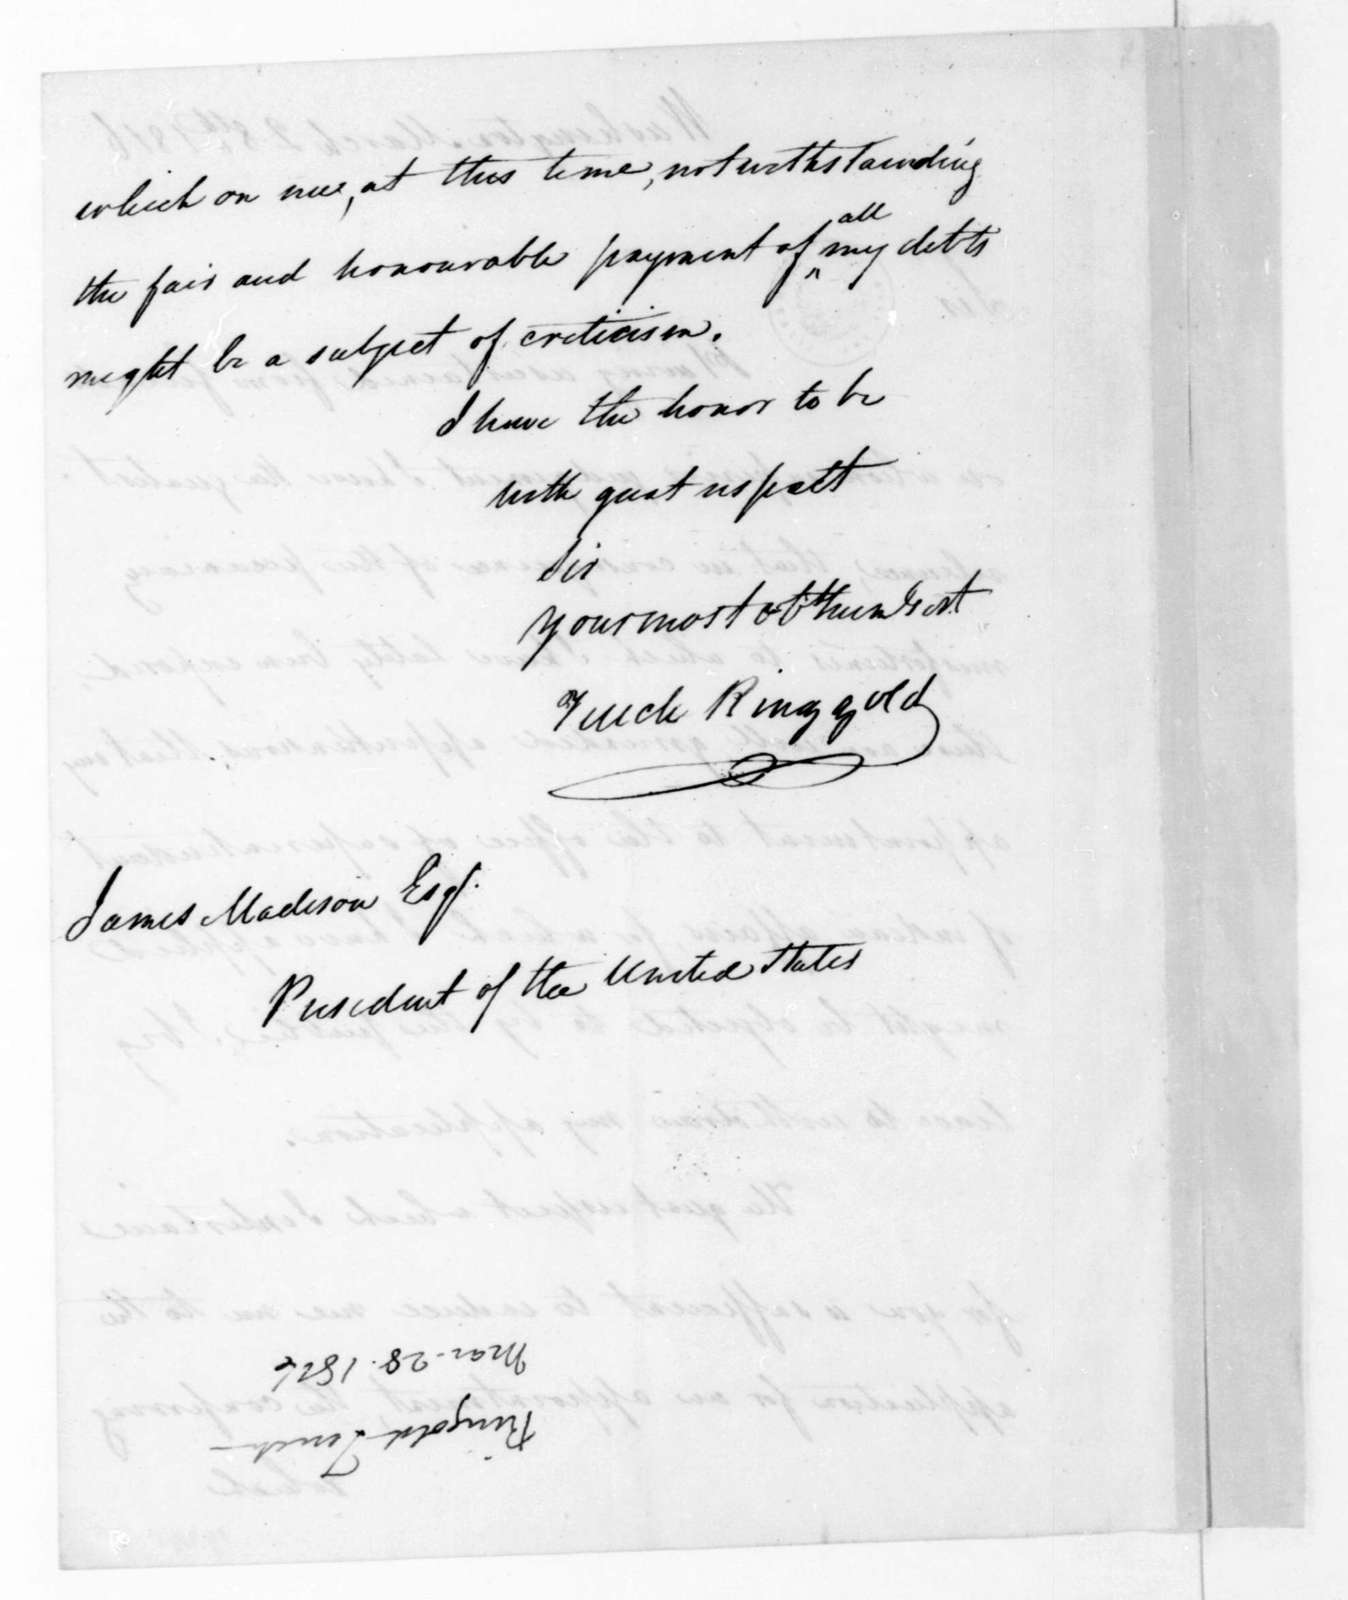 Tench Ringgold to James Madison, March 28, 1816.